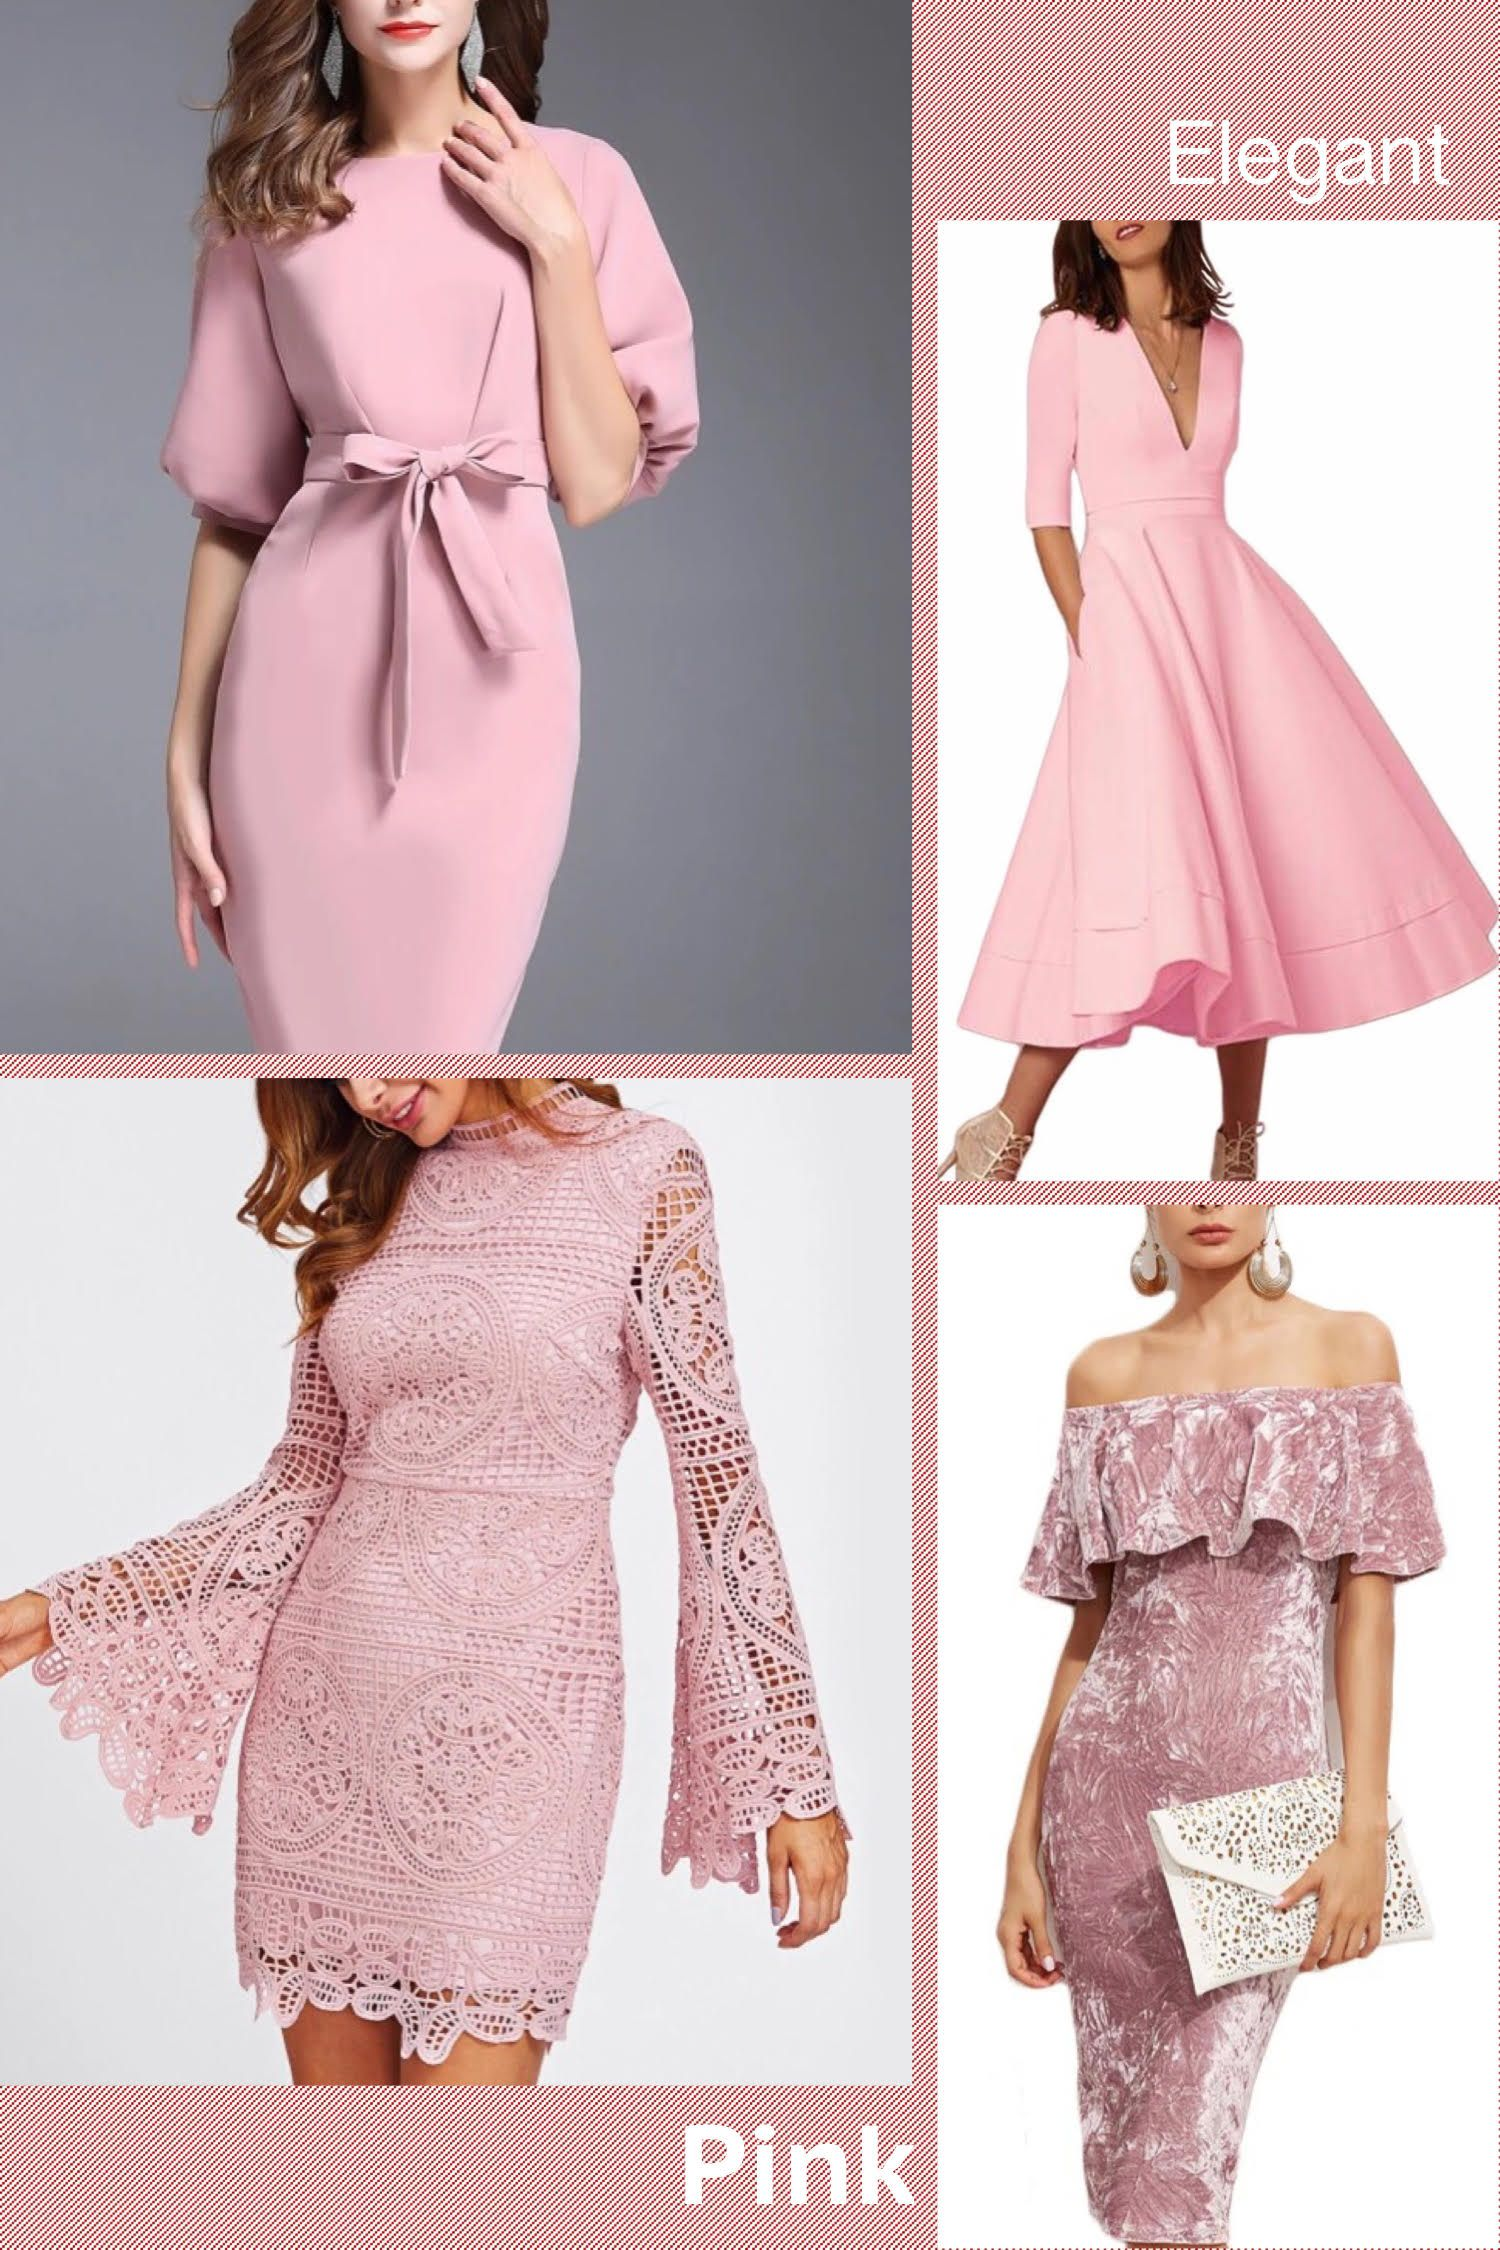 PINK Holiday Party Dresses For Women | Dressed in Pink | Pinterest ...